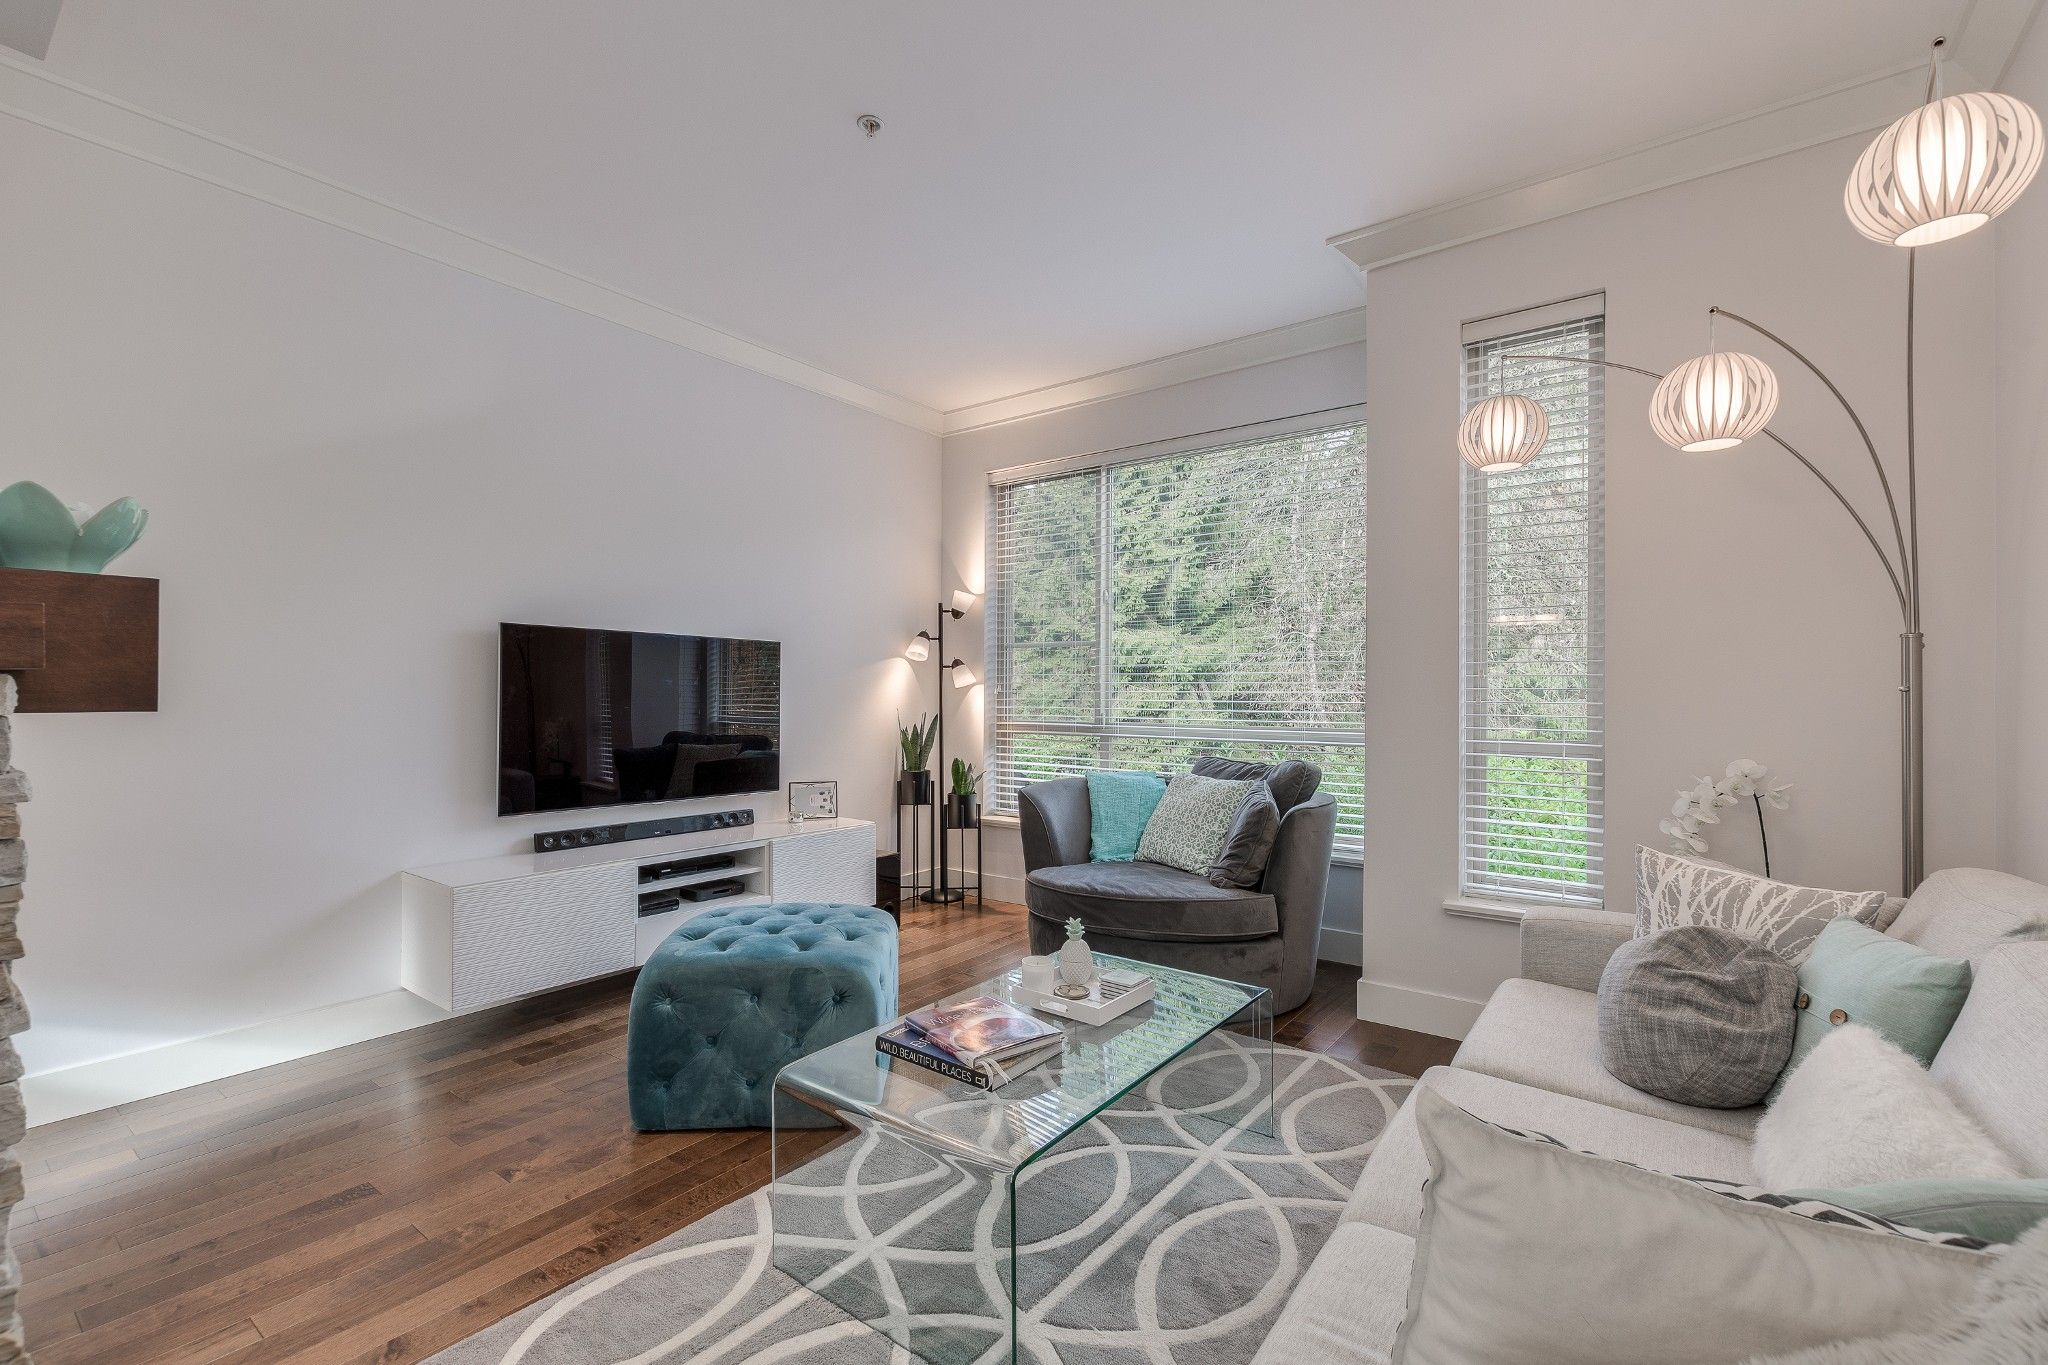 Photo 12: Photos: 24 897 Premier Street in : Lynnmour Townhouse for sale (North Vancouver)